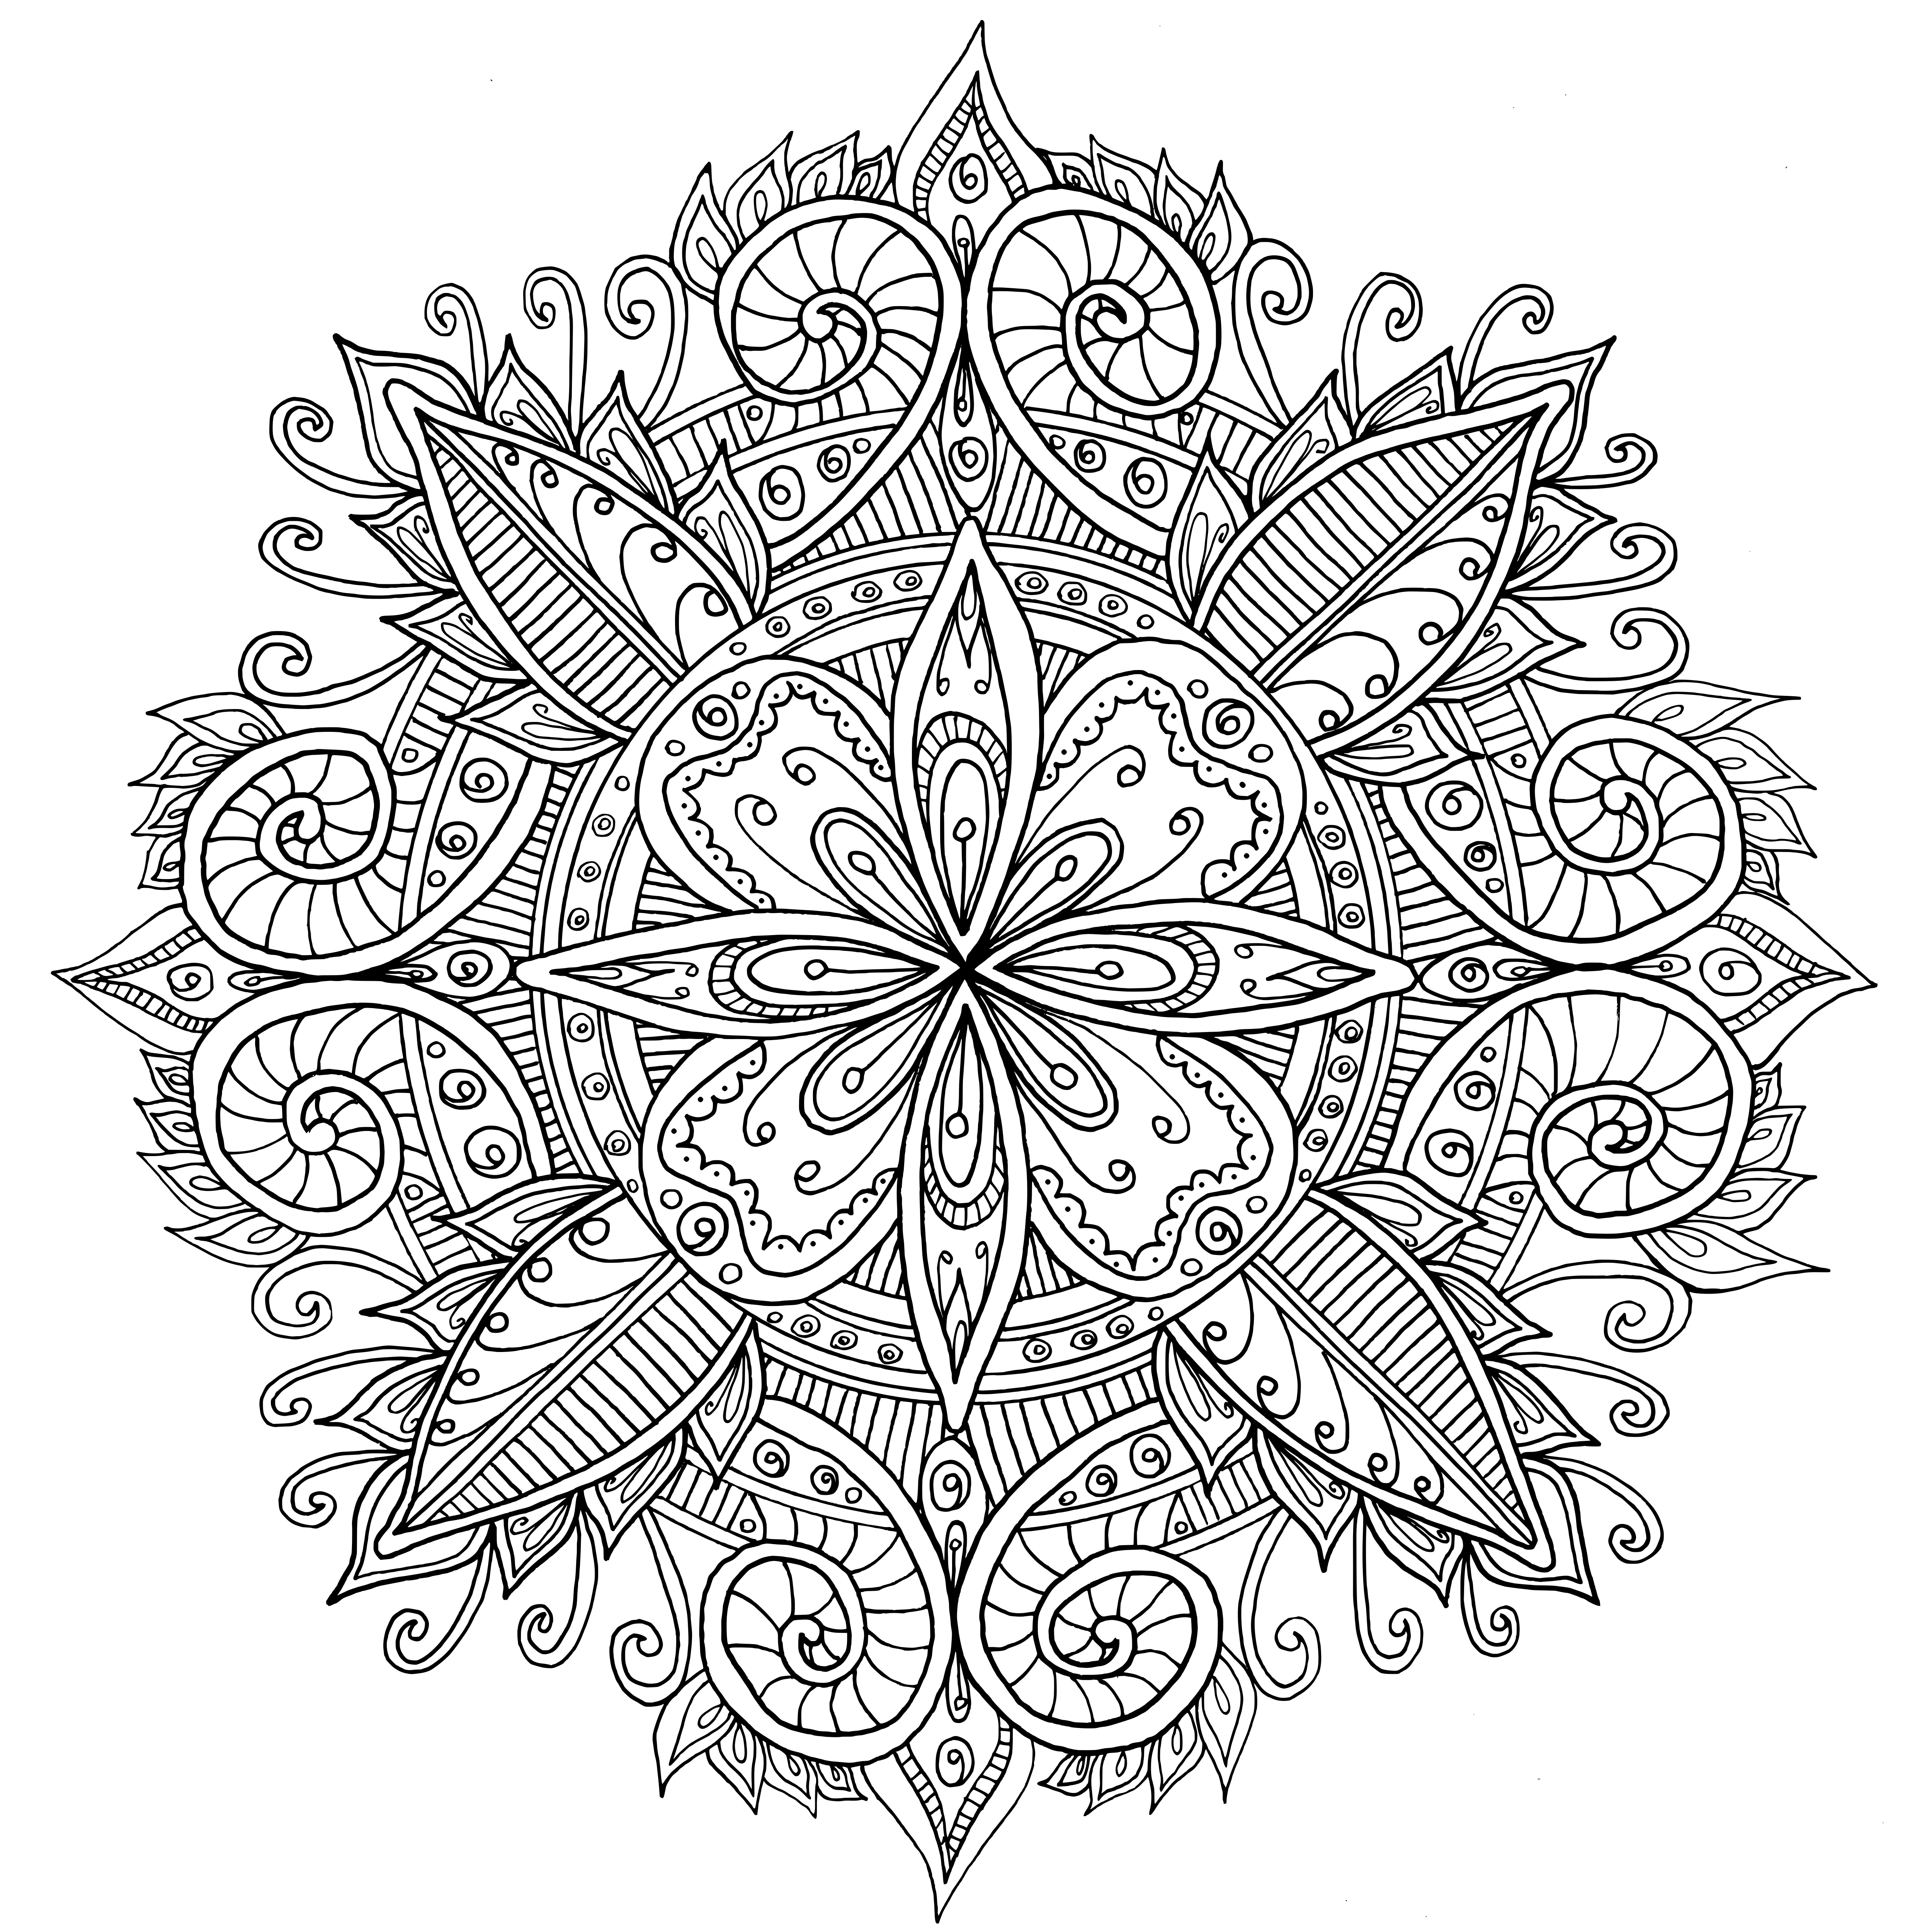 Mandala coloring pages for r coloring pages - Mandala Pictures Mandala Hotel R Coloring